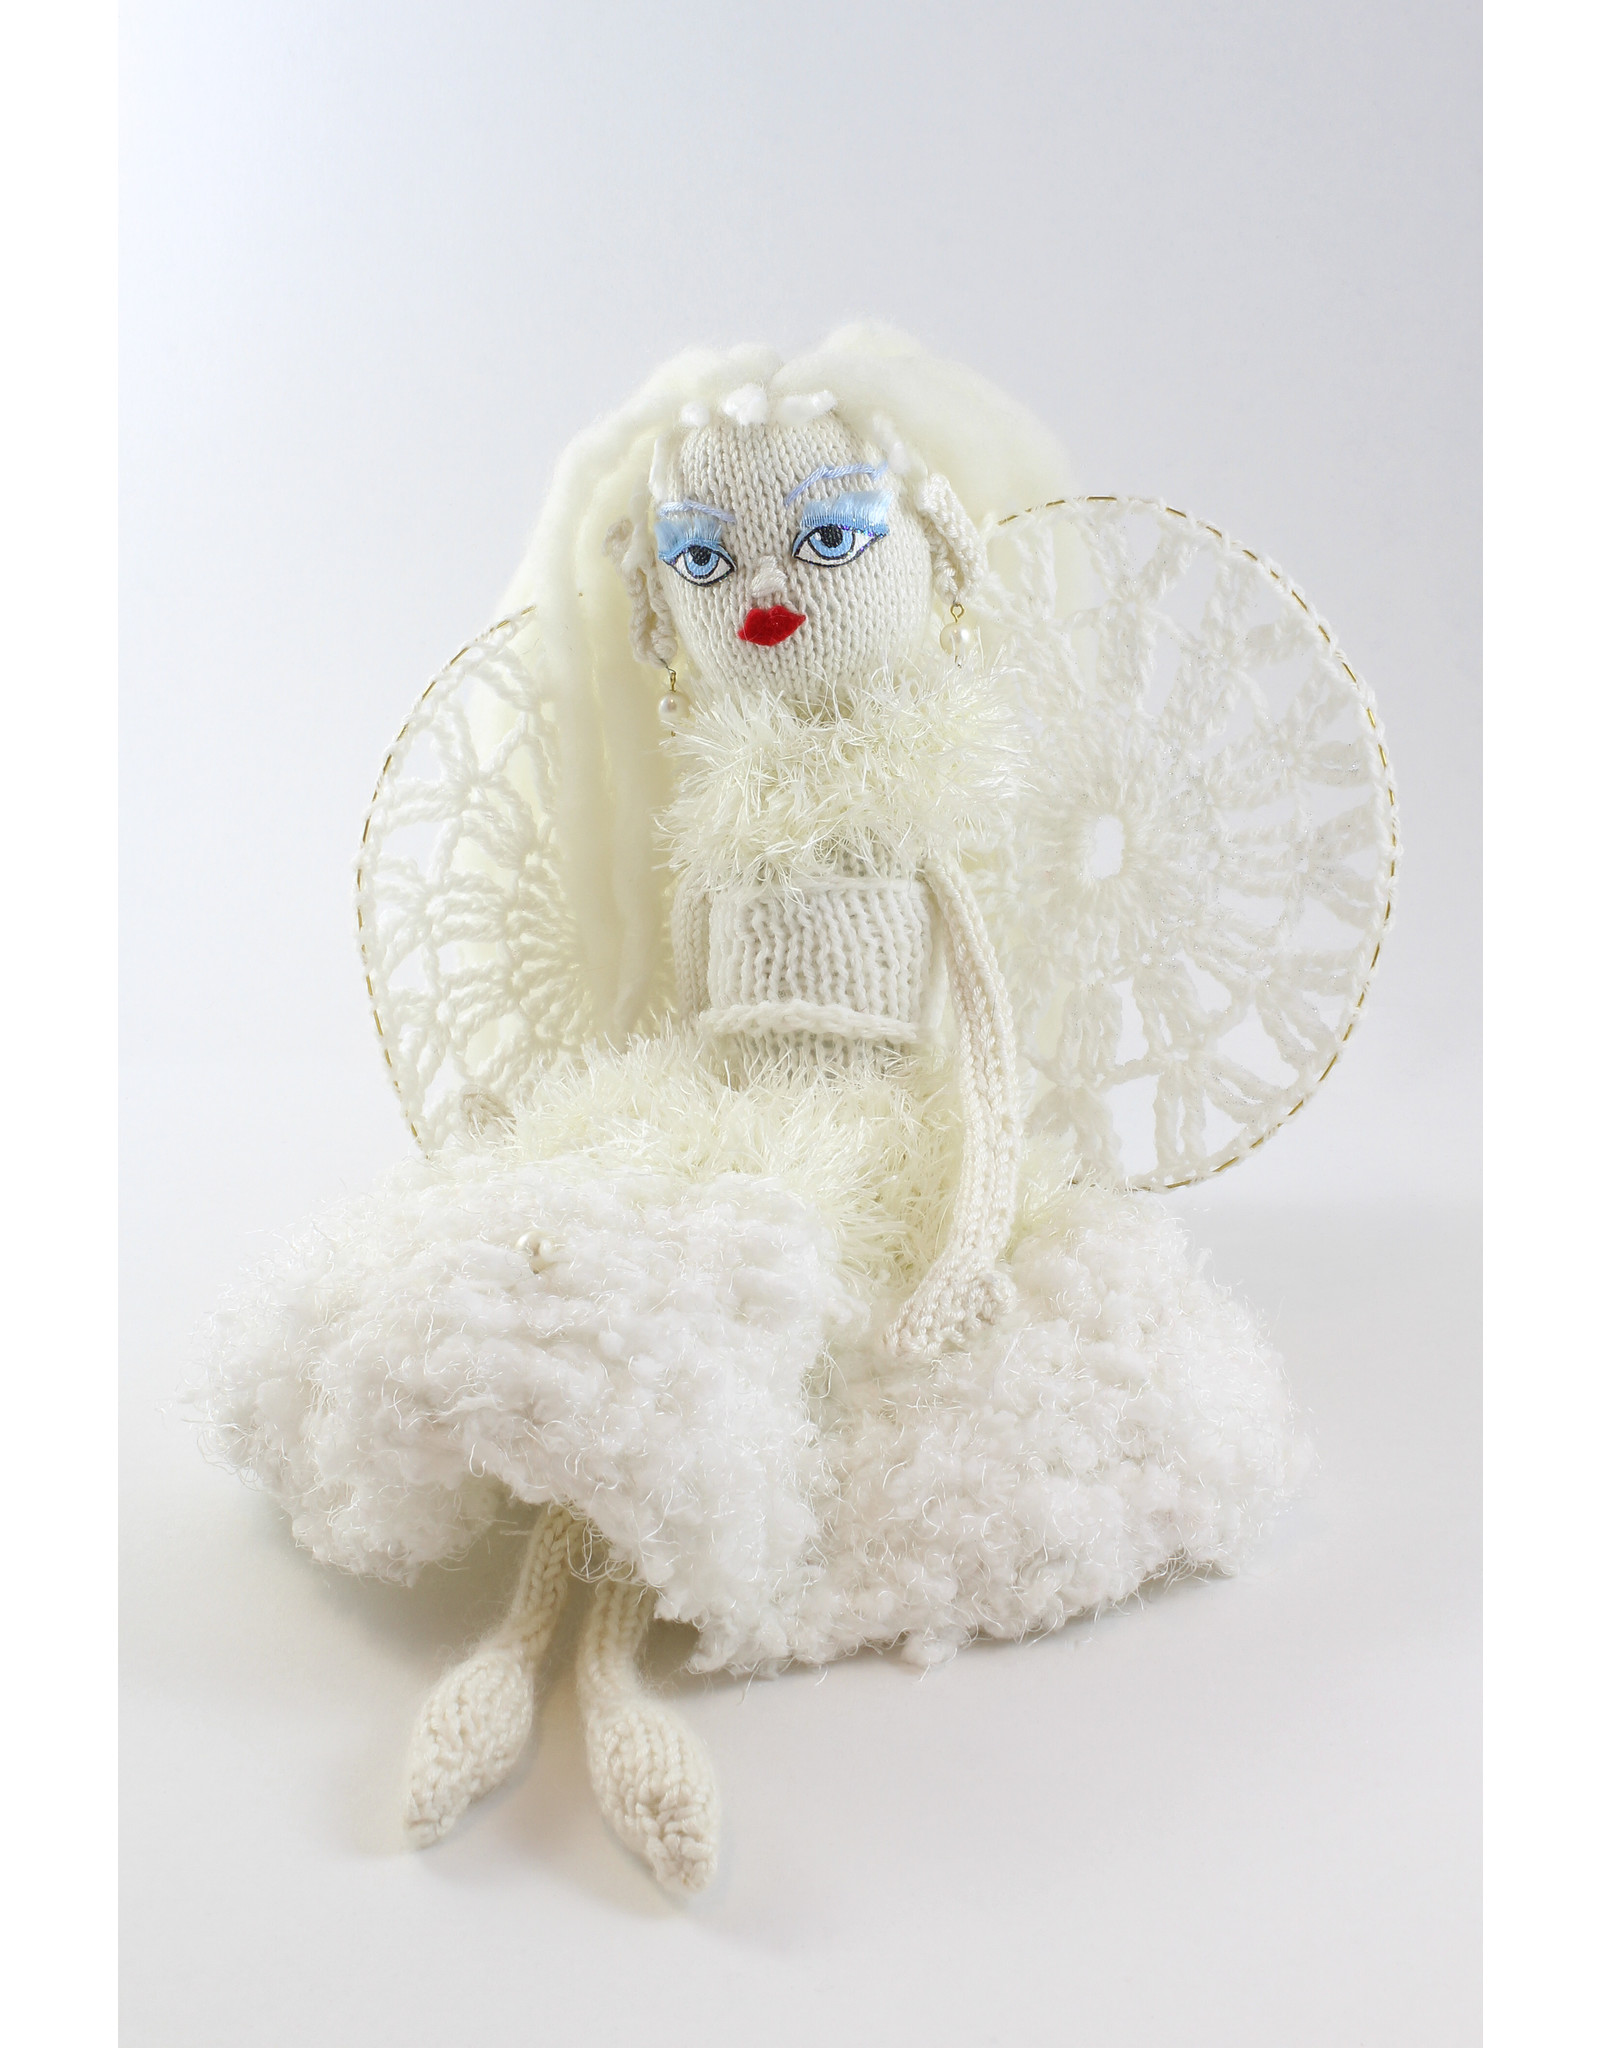 Molly Ritchie Gweneira the Snow Fairy by Molly Ritchie